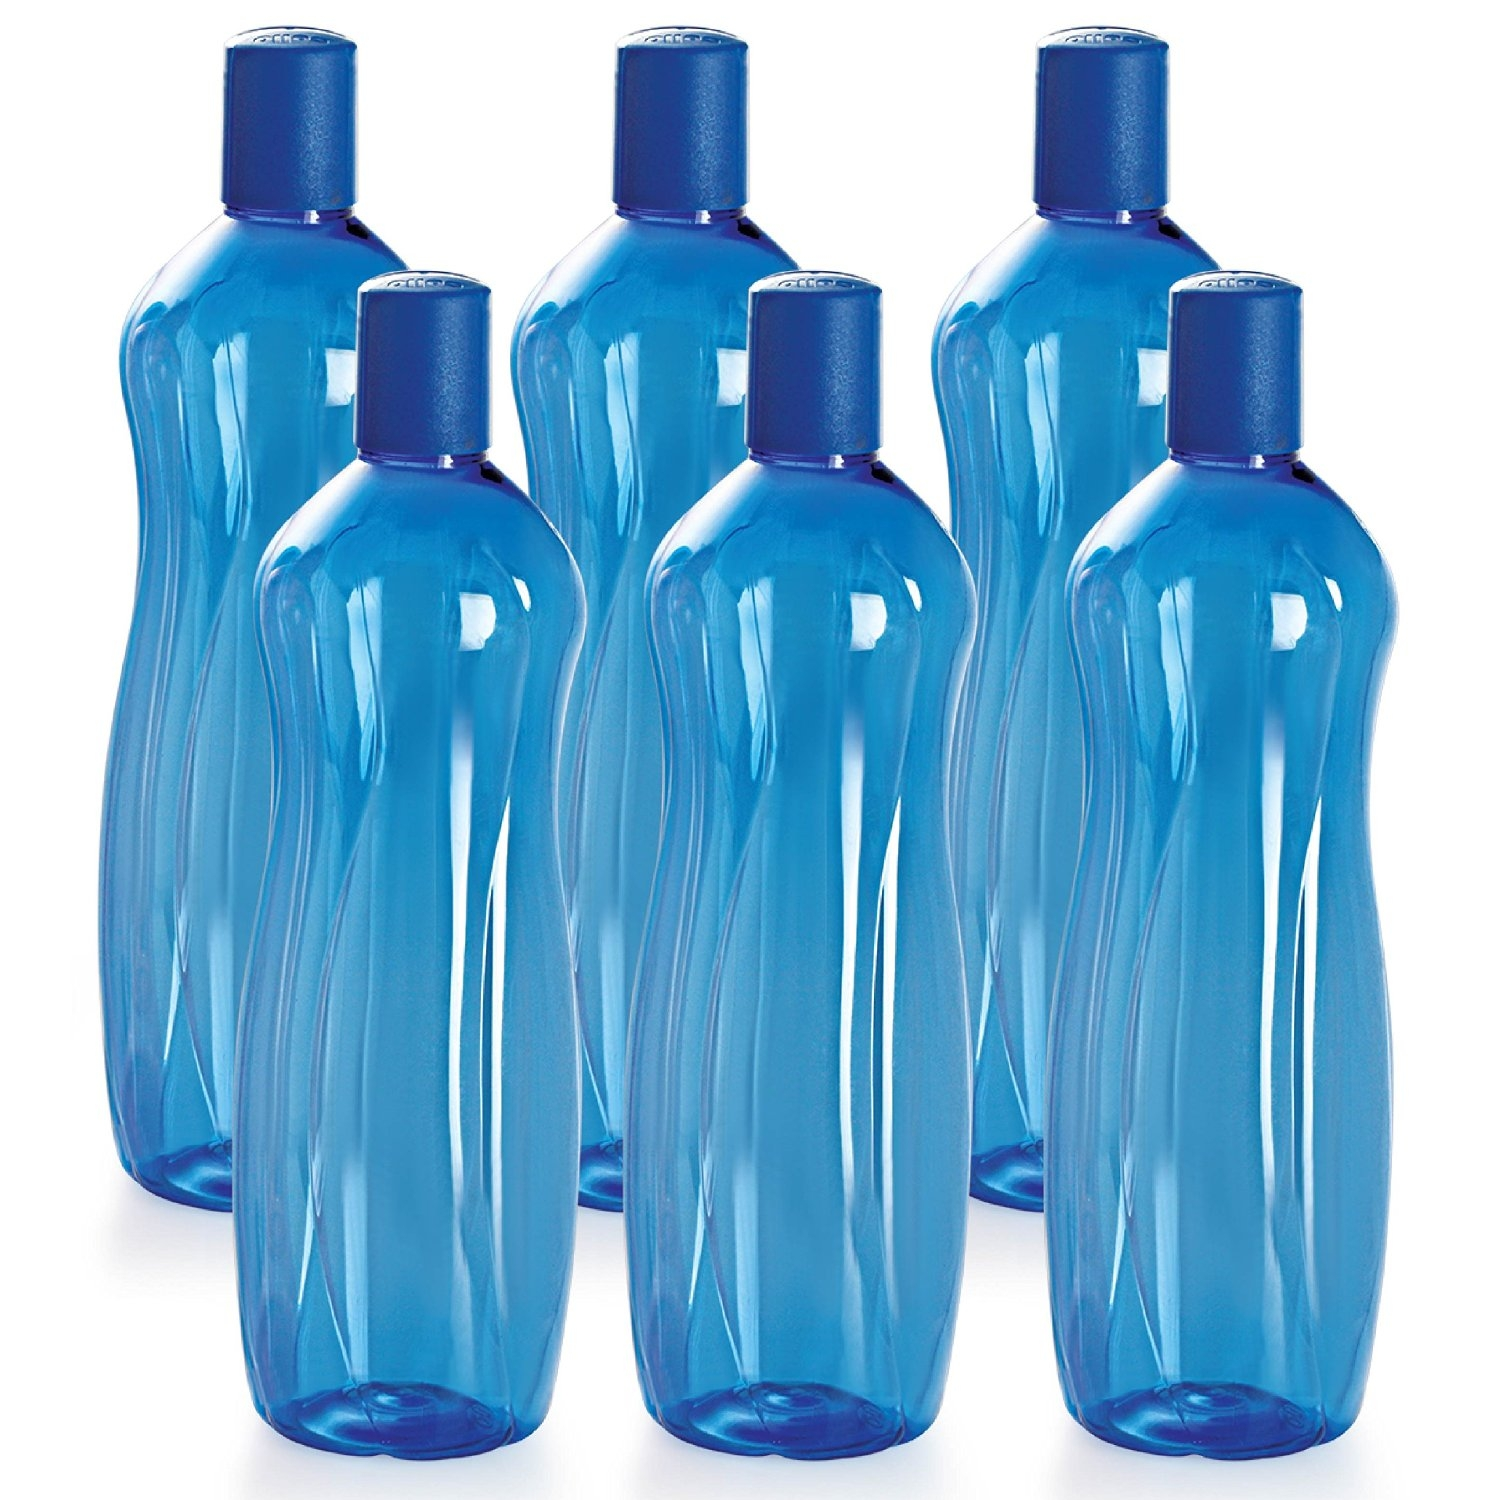 ICARE FRIDGE BOTTLE 6 PCS SET